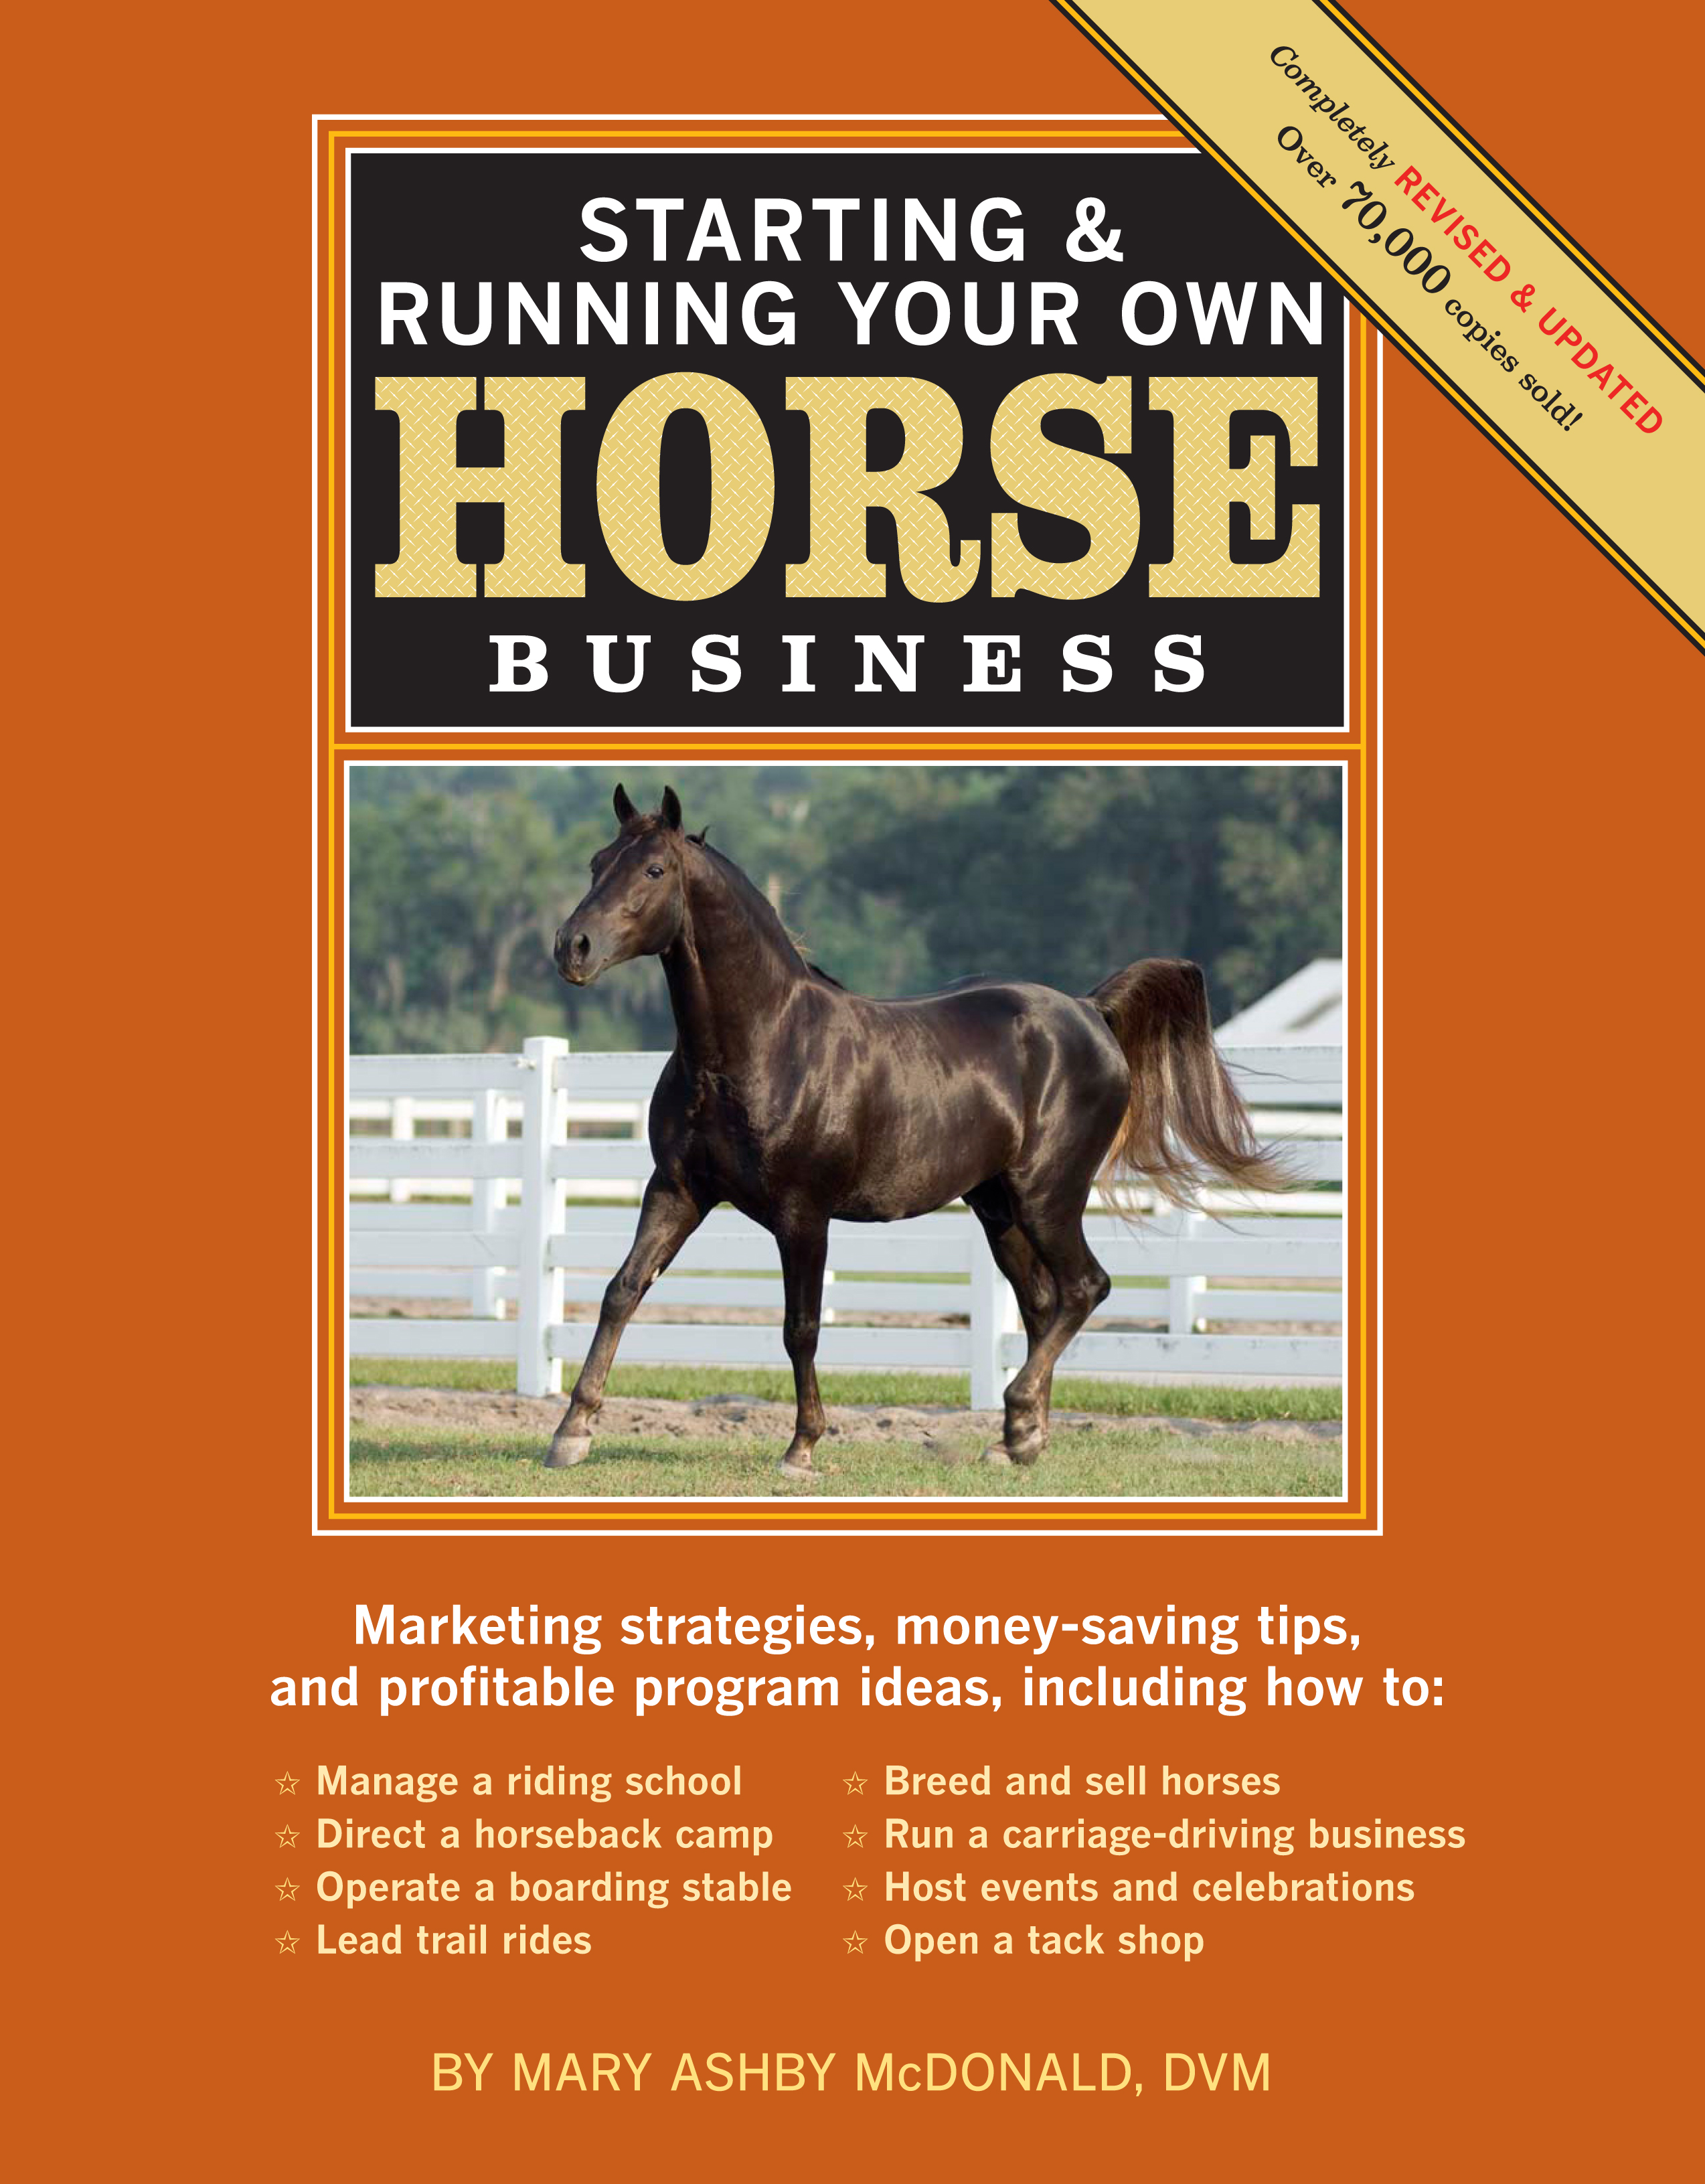 Starting & Running Your Own Horse Business, 2nd Edition Marketing strategies, money-saving tips, and profitable program ideas - Mary Ashby McDonald